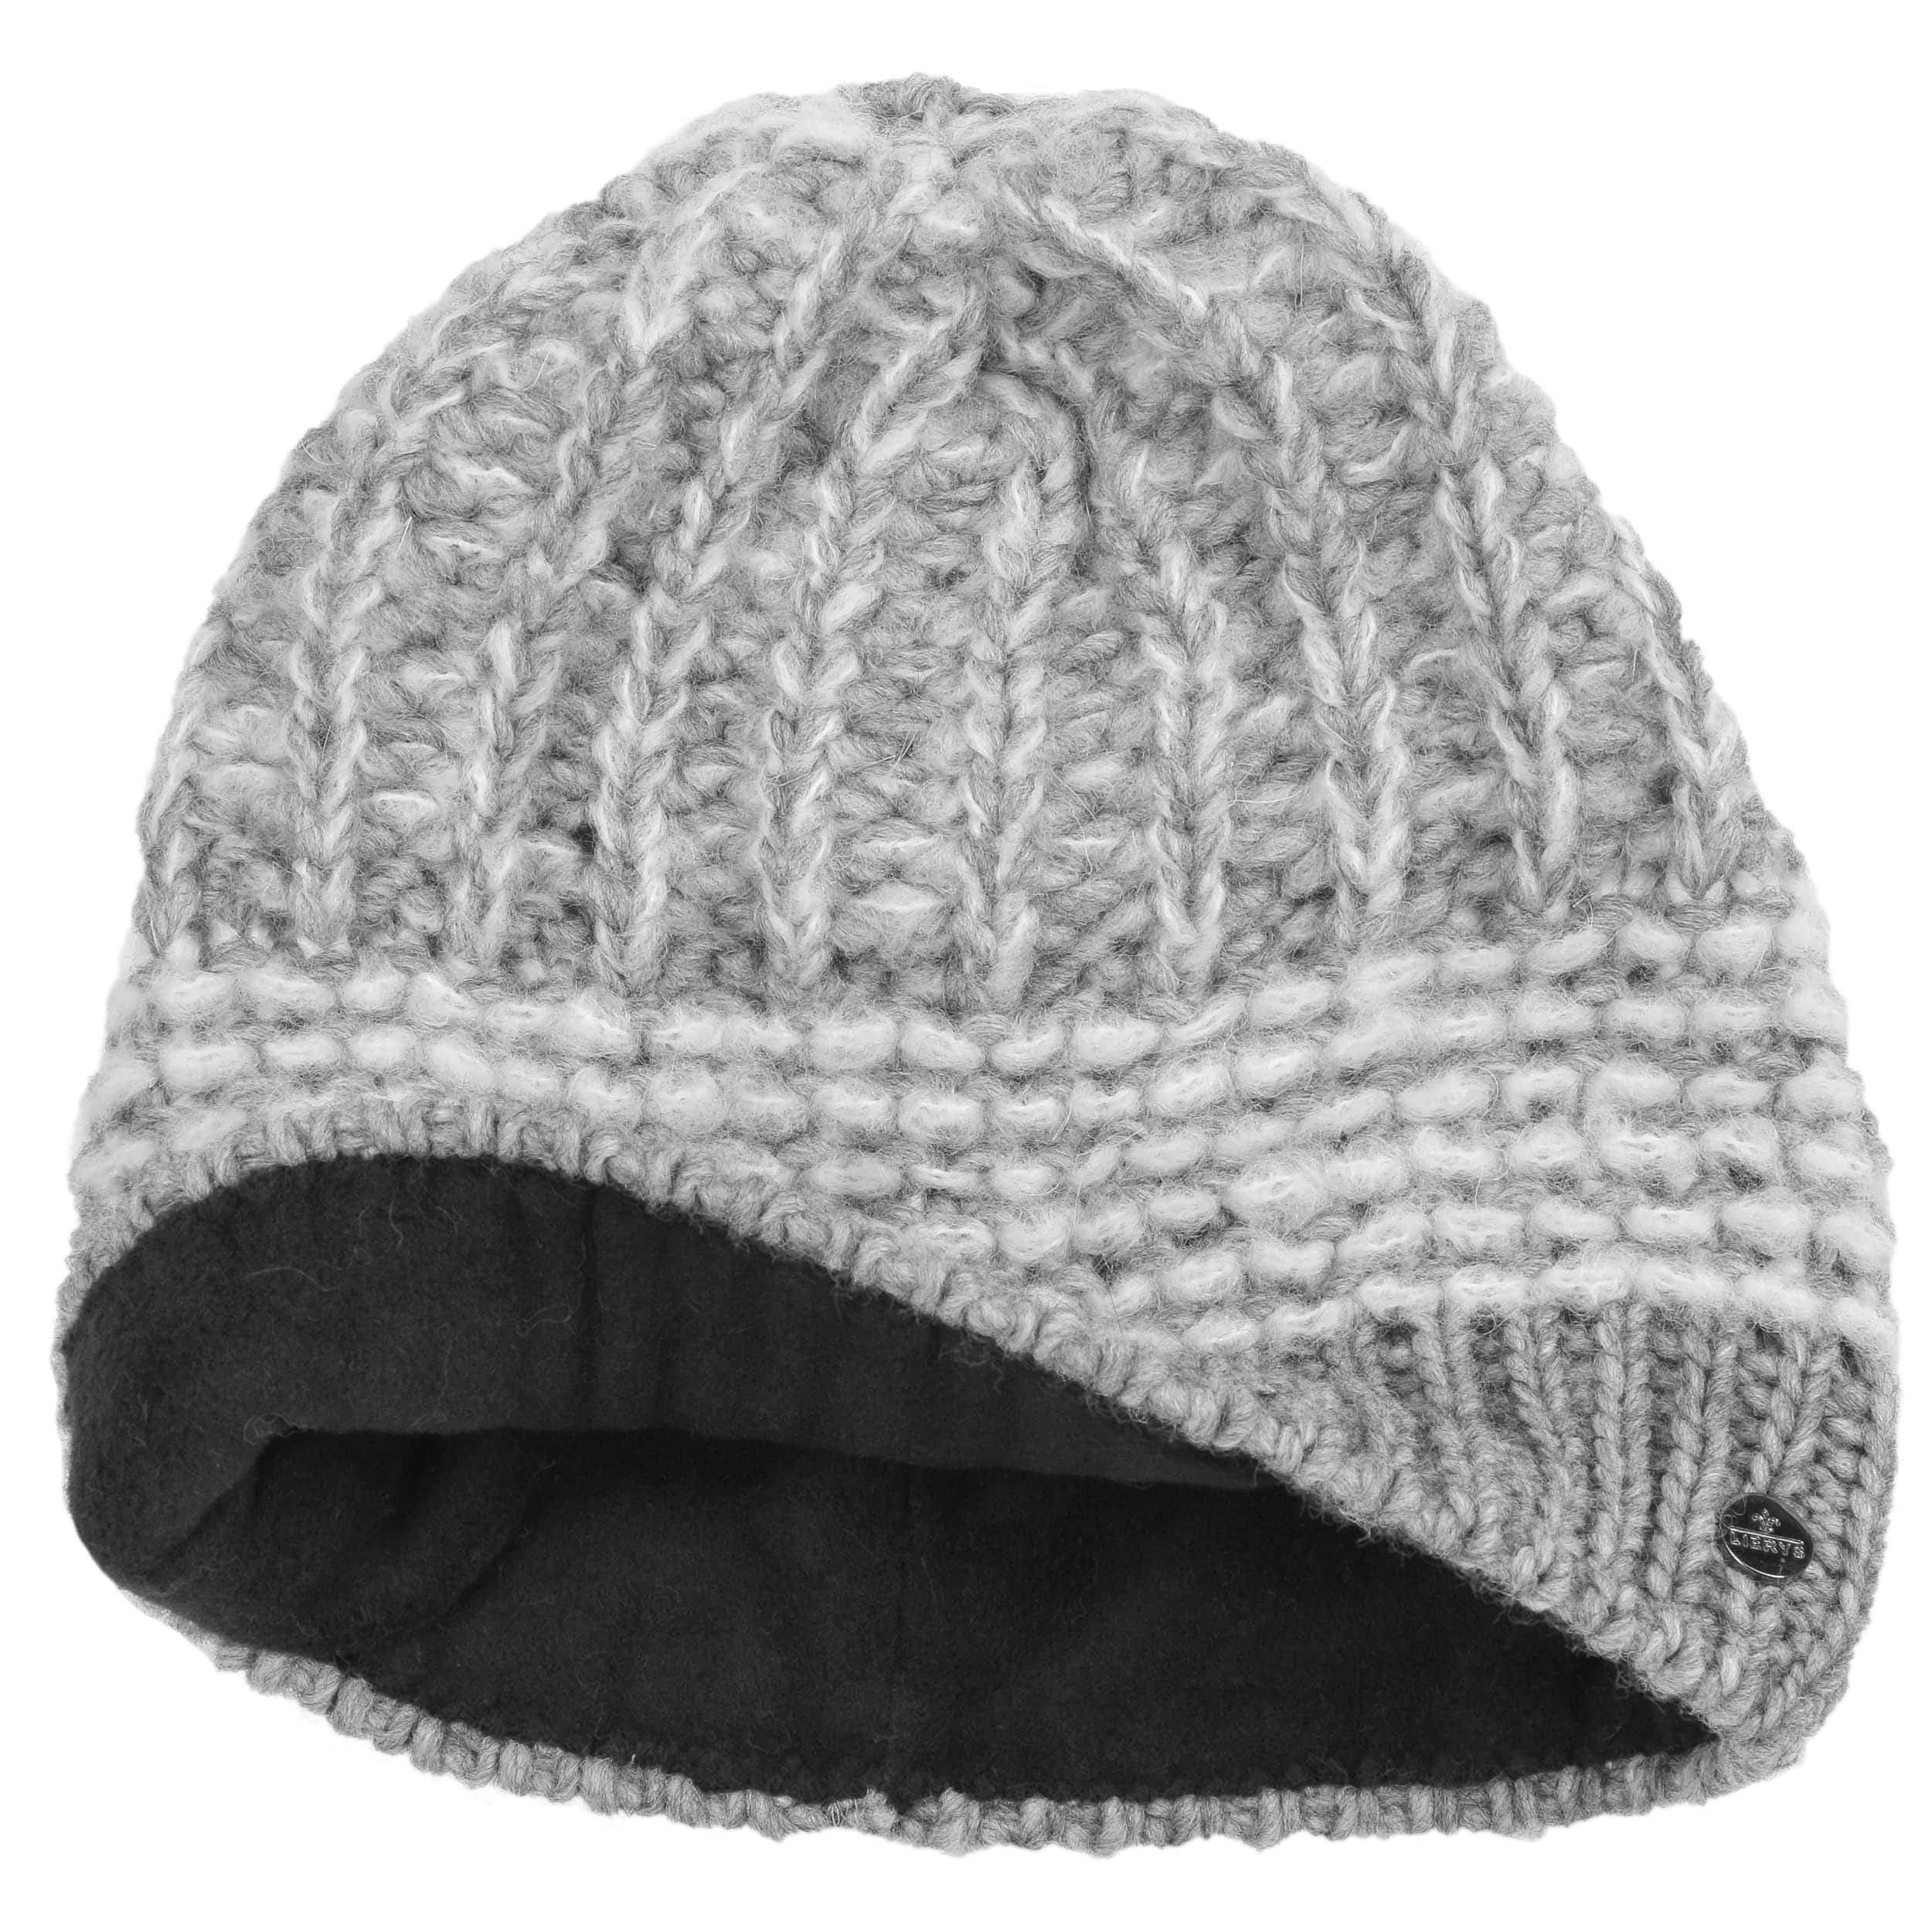 Knitting Pattern For Mohair Hat : Mohair Twotone Knit Hat by Lierys, EUR 34,95 --> Hats, caps & beanies ...